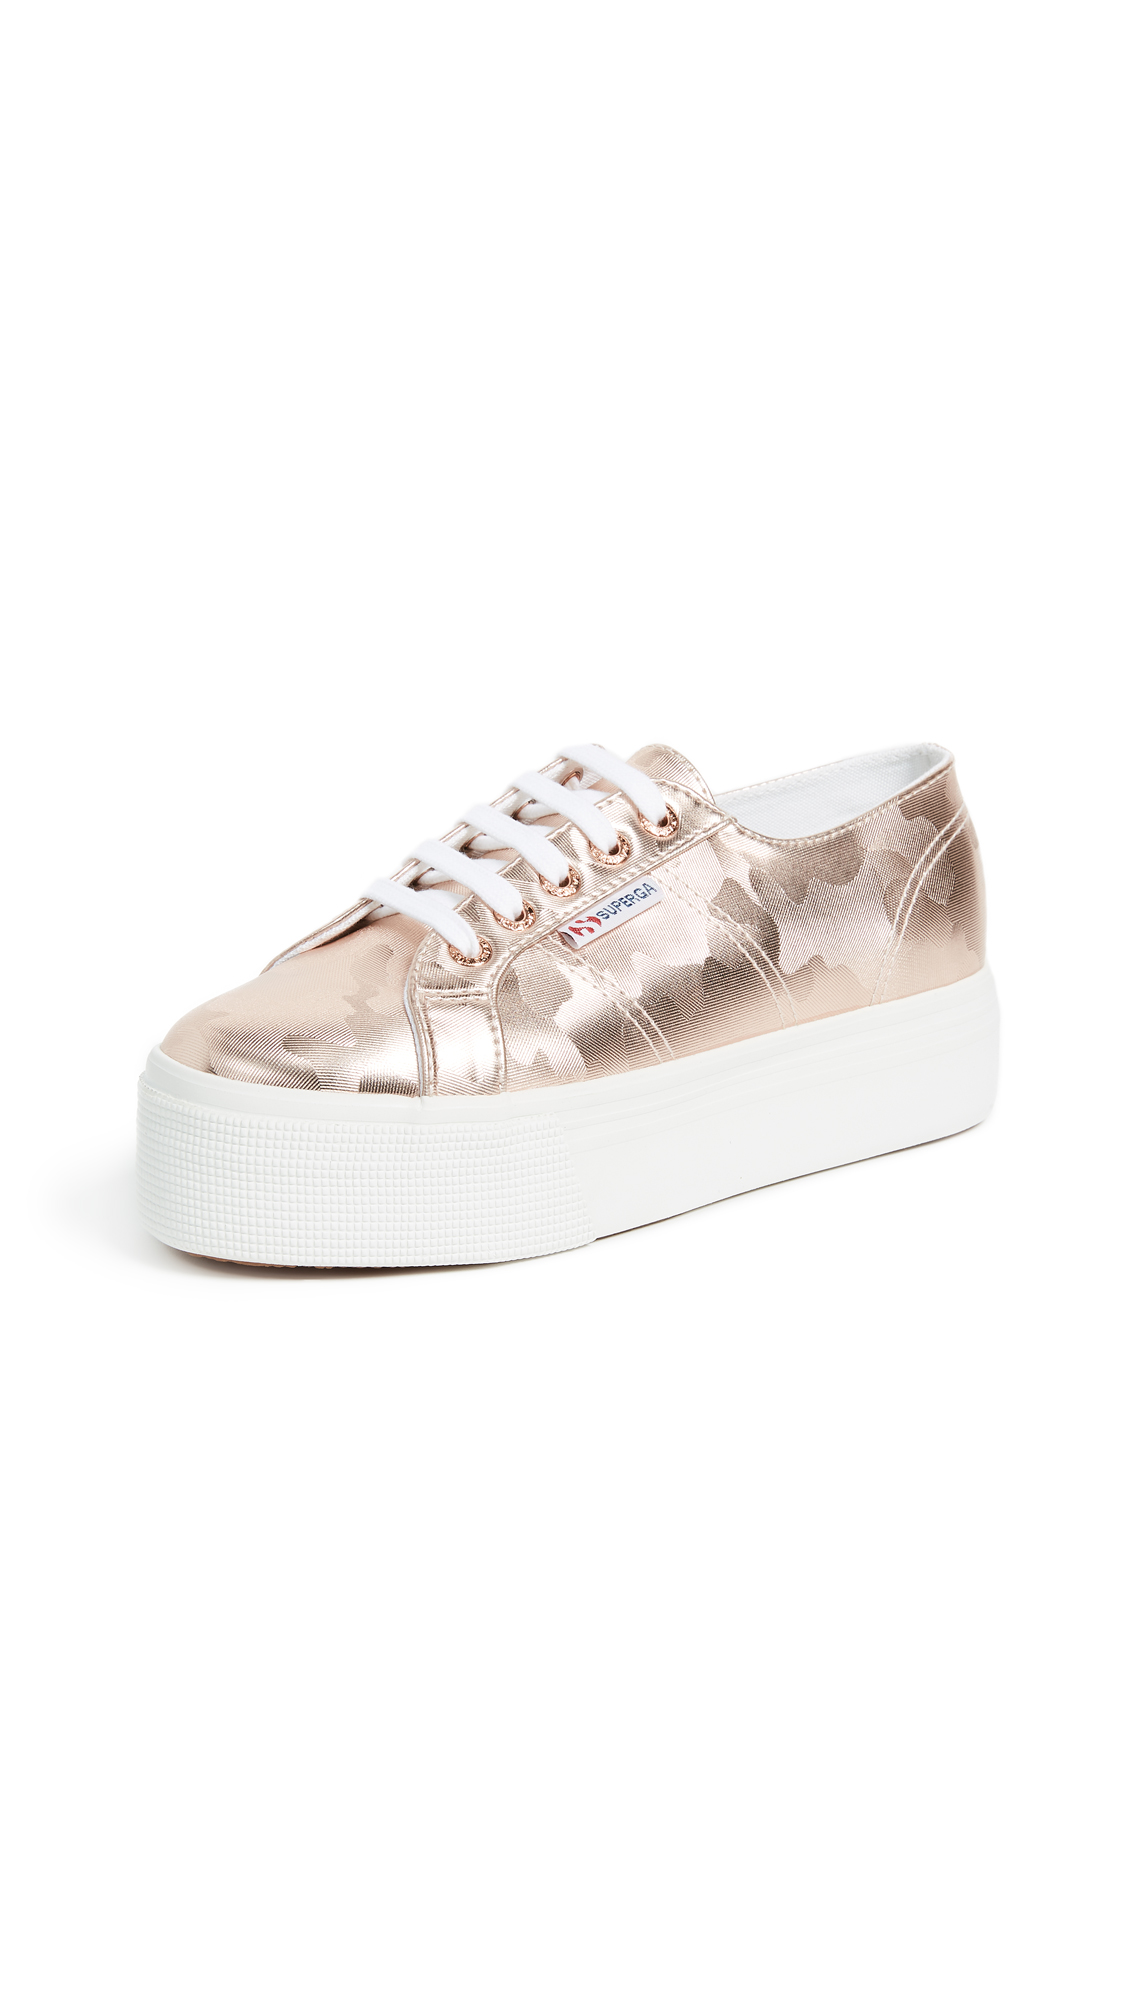 Superga 2790 Army Chrome Platform Sneakers - Rose Gold